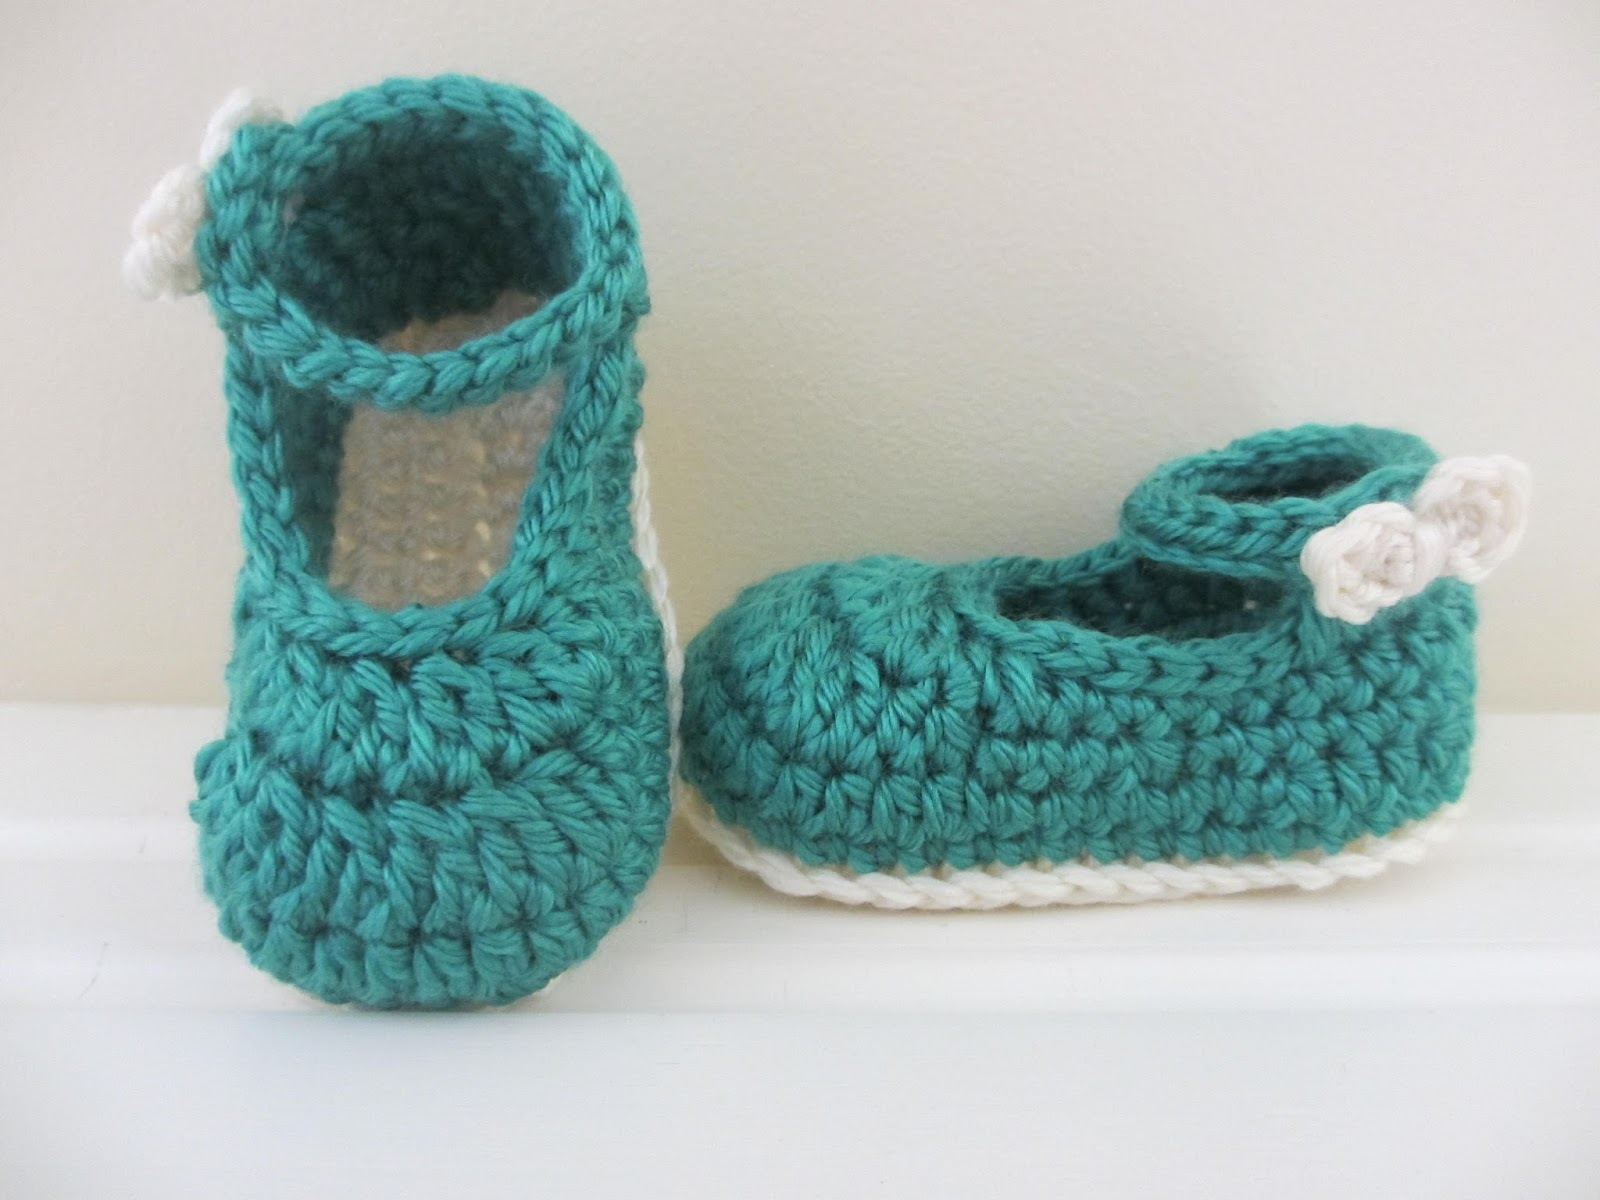 Free Crochet Patterns Baby Mary Jane Shoes : Jays Boutique Blog: FREE PATTERN: Bow Buckle Mary Janes